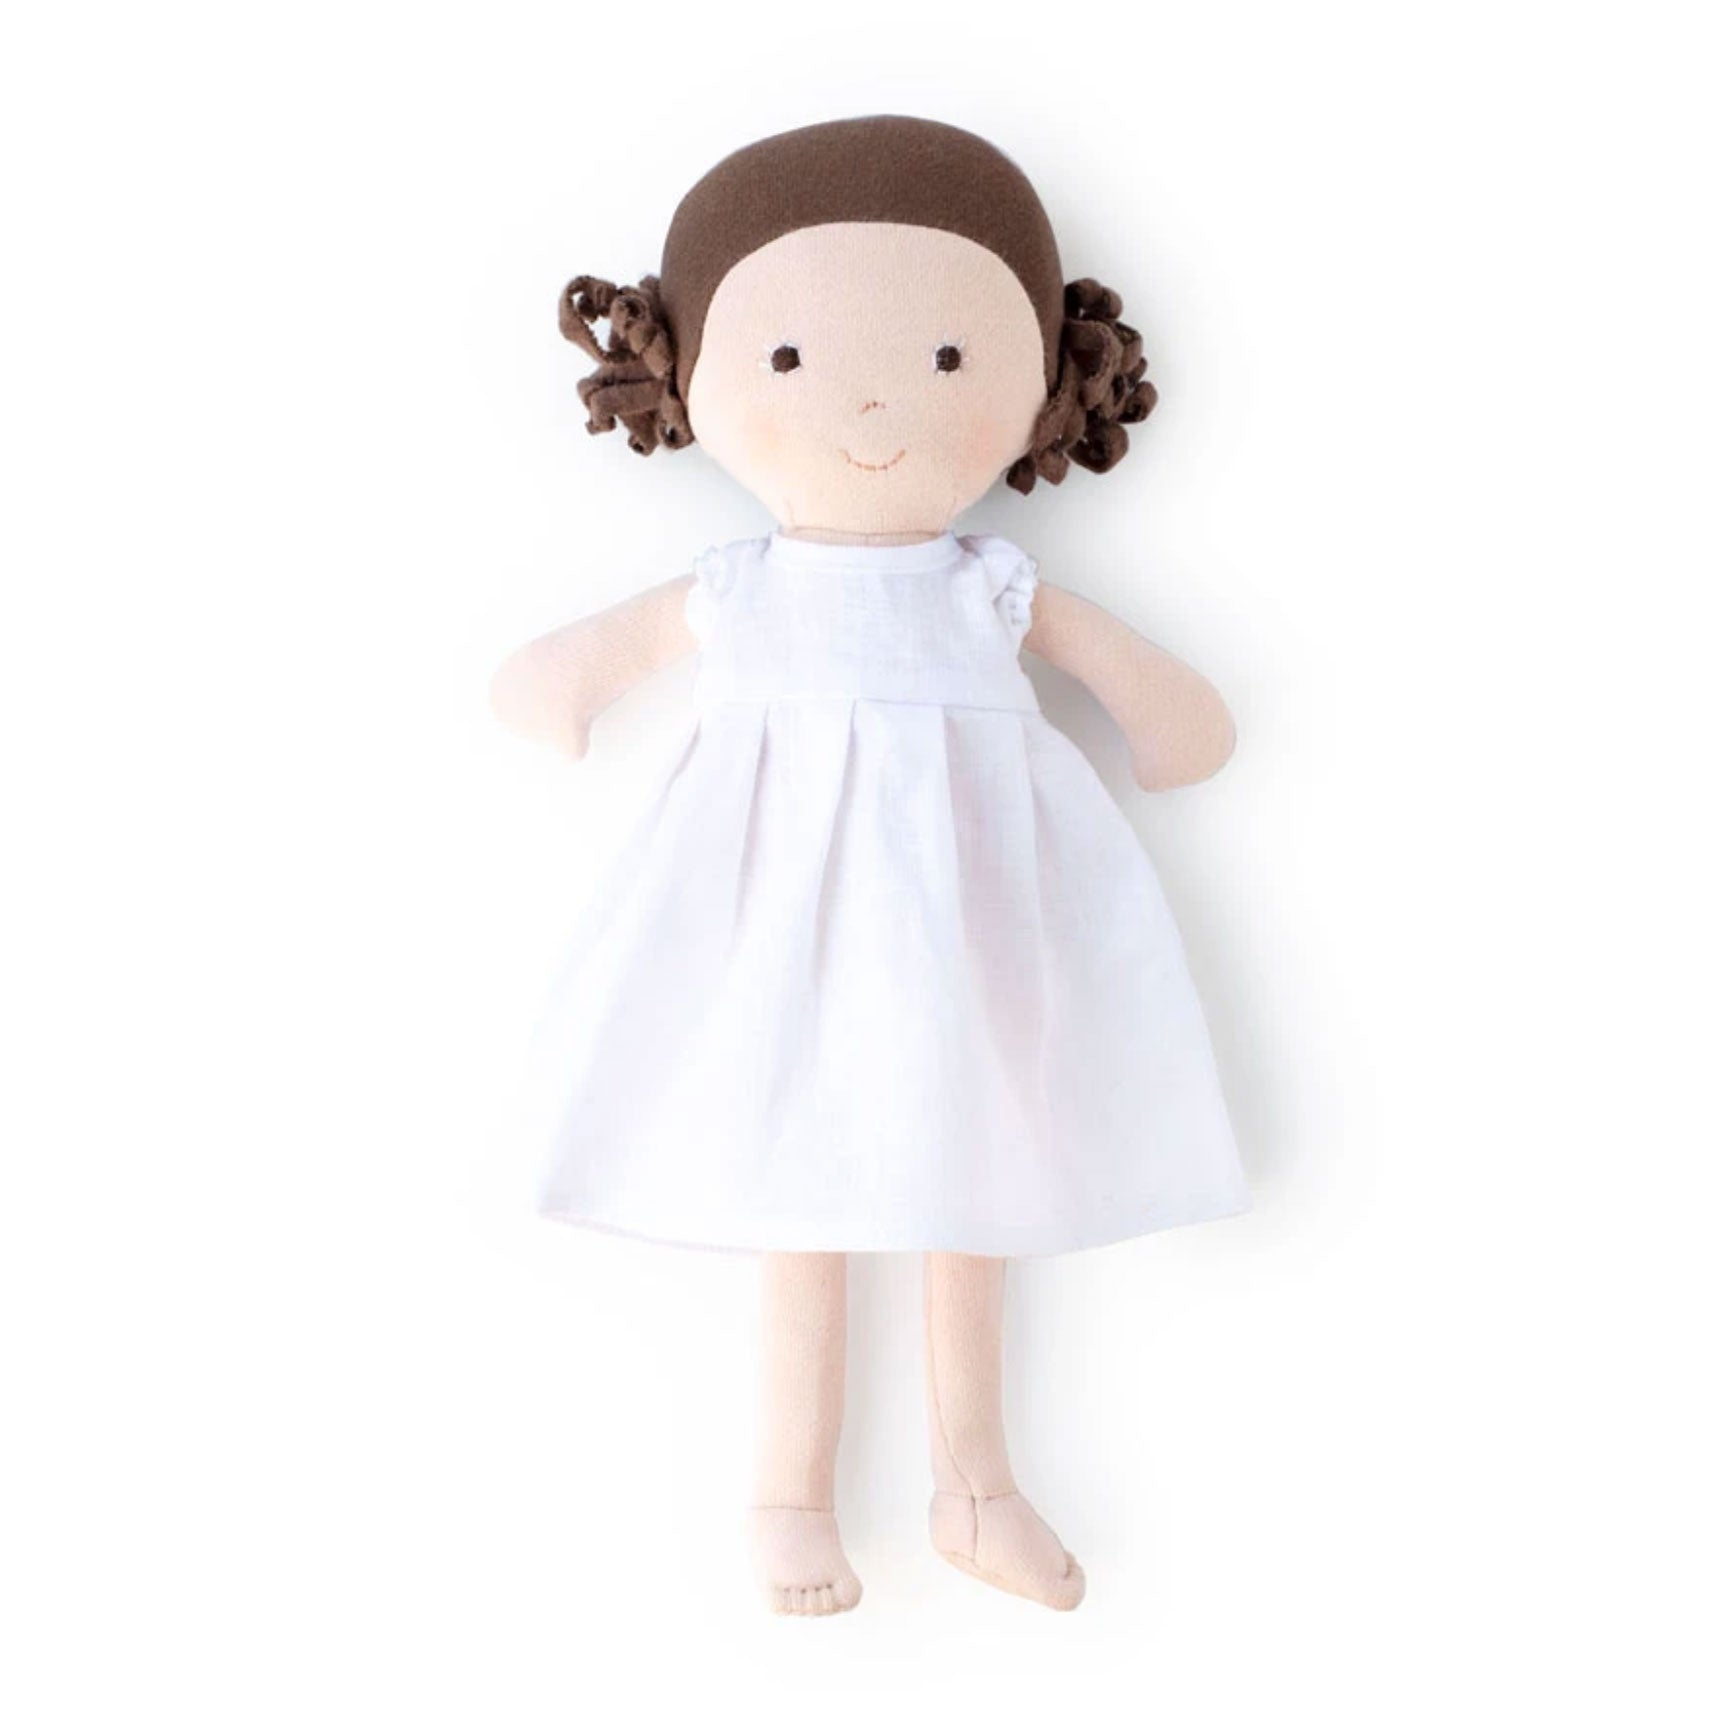 Hazel Village Louise soft doll at Bonjour Baby Baskets, luxury baby gifts